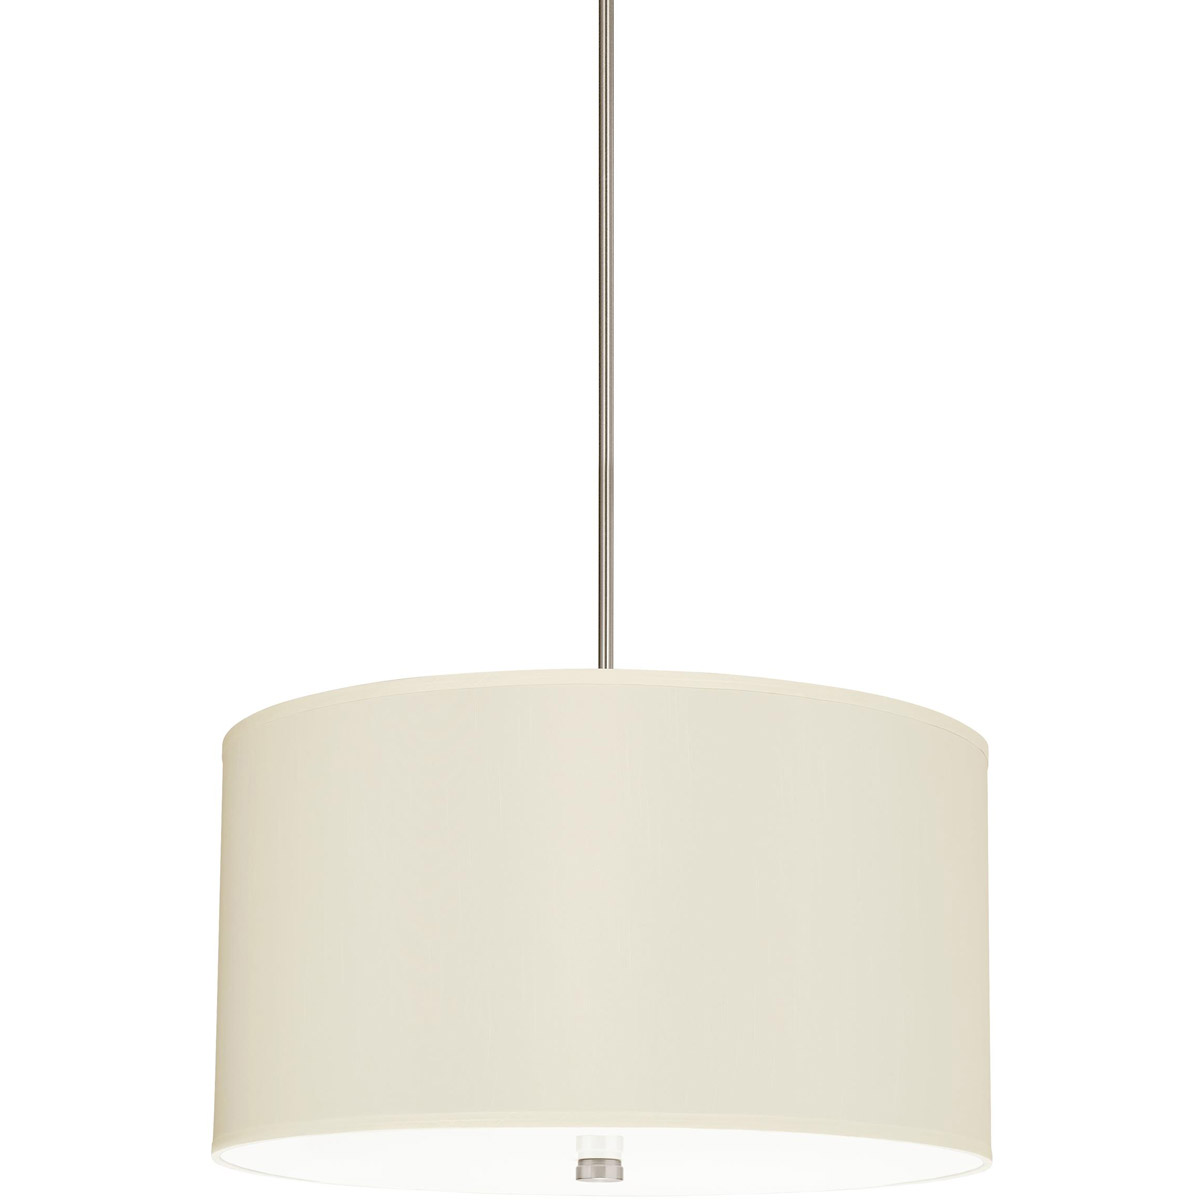 Sea Gull 65262-962 Dayna 4 Light 24 inch Brushed Nickel Shade Pendant Ceiling Light in Faux Silk Fabric, Standard photo